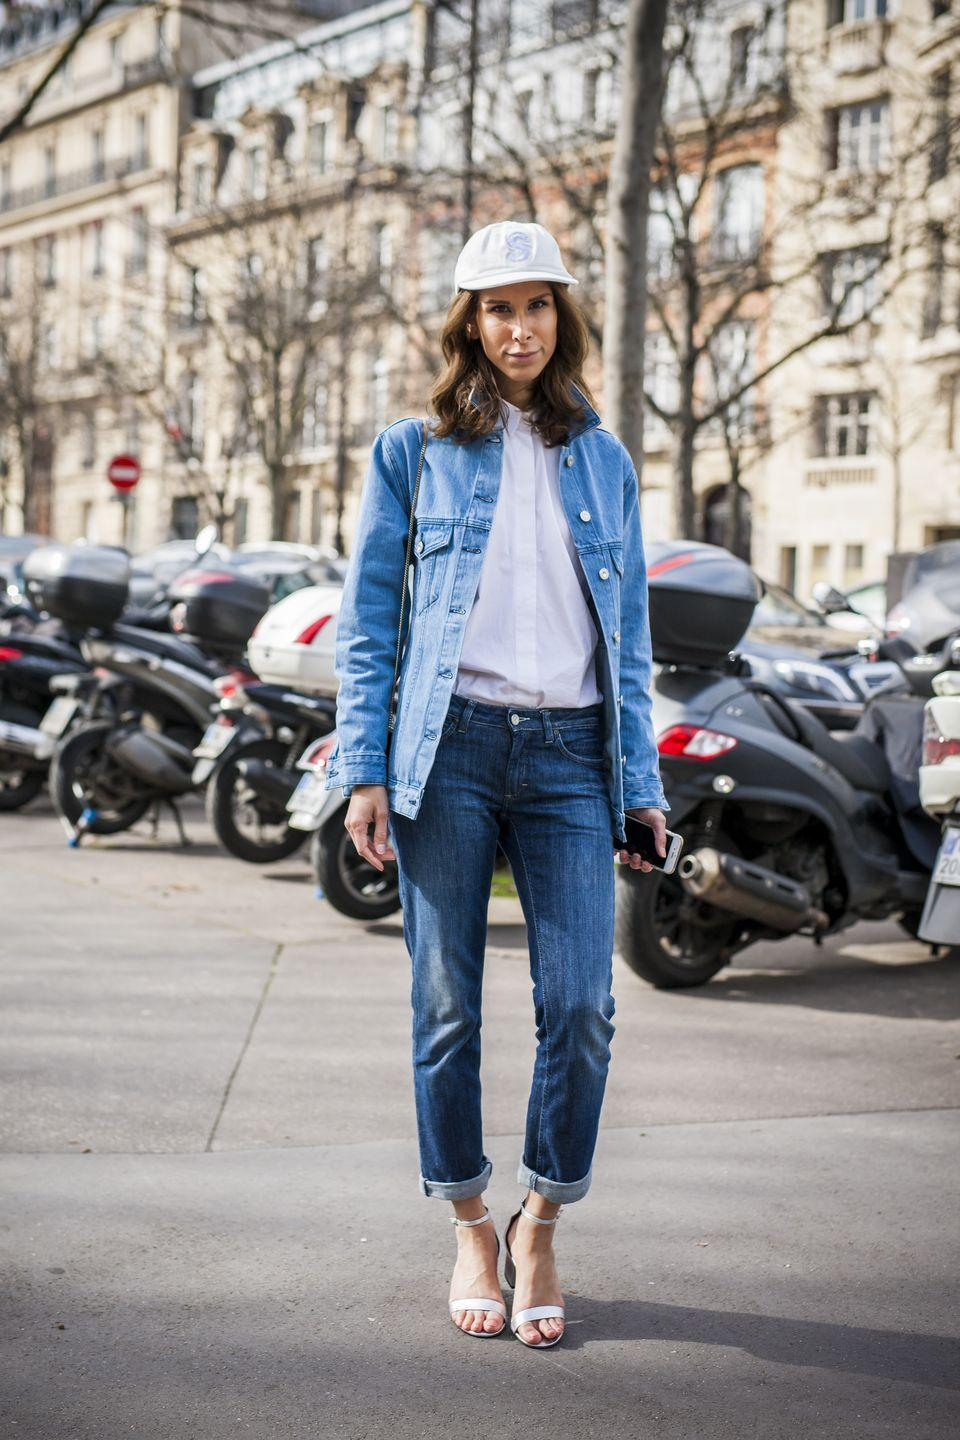 "<p>Don't listen to nay sayers. Denim on denim is a DO! The denim doesn't have to match necessarily, it's really more about proportions and keeping it simple with your accessories. The touch of a <a href=""https://www.amazon.com/slp/womens-white-button-up-shirt/oqj7c262v47c5ft?tag=syn-yahoo-20&ascsubtag=%5Bartid%7C10055.g.27890498%5Bsrc%7Cyahoo-us"" rel=""nofollow noopener"" target=""_blank"" data-ylk=""slk:crisp white button down"" class=""link rapid-noclick-resp"">crisp white button down</a>, baseball cap, and ankle strap heel keep things sophisticated and polished. </p>"